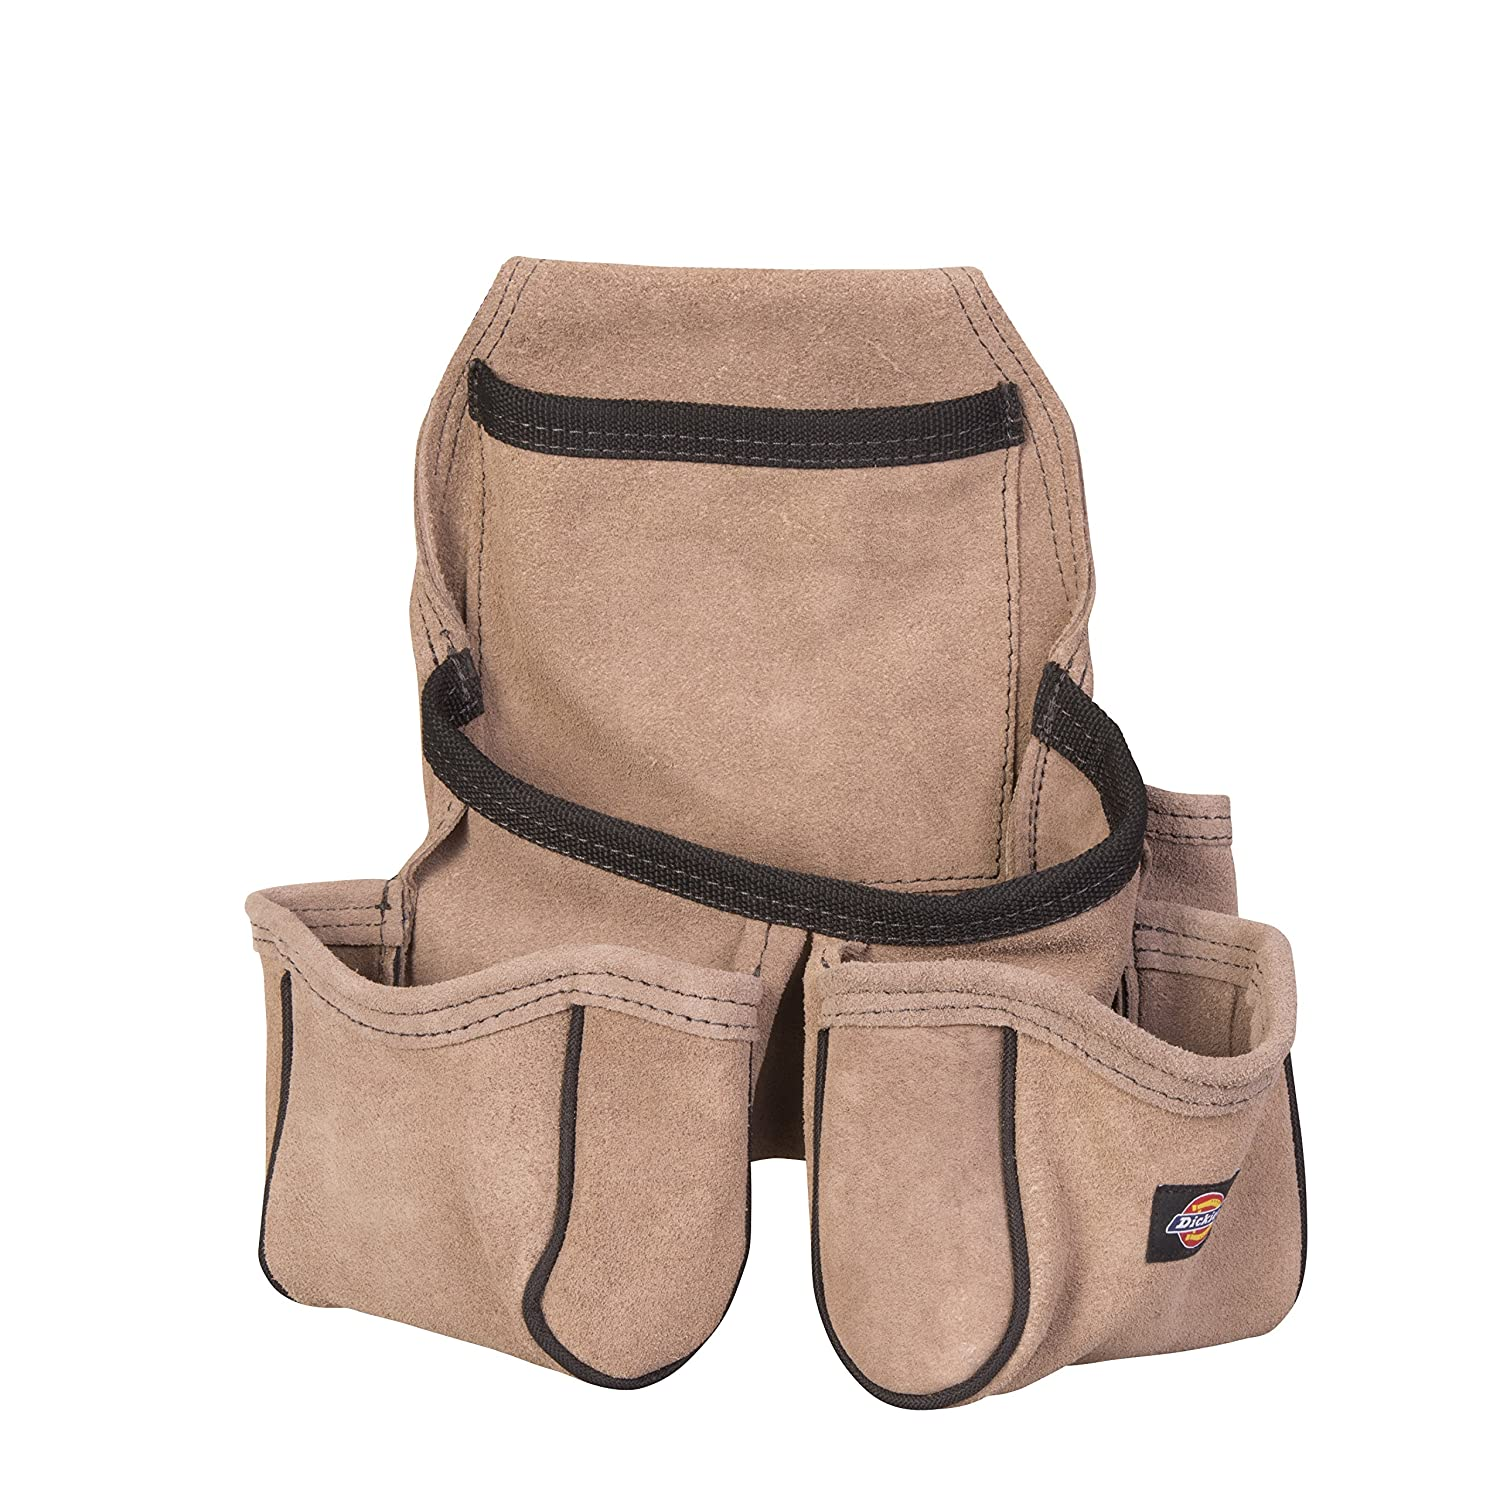 Dickies Work Gear 57029 4 Pocket Leather Tool Pouch